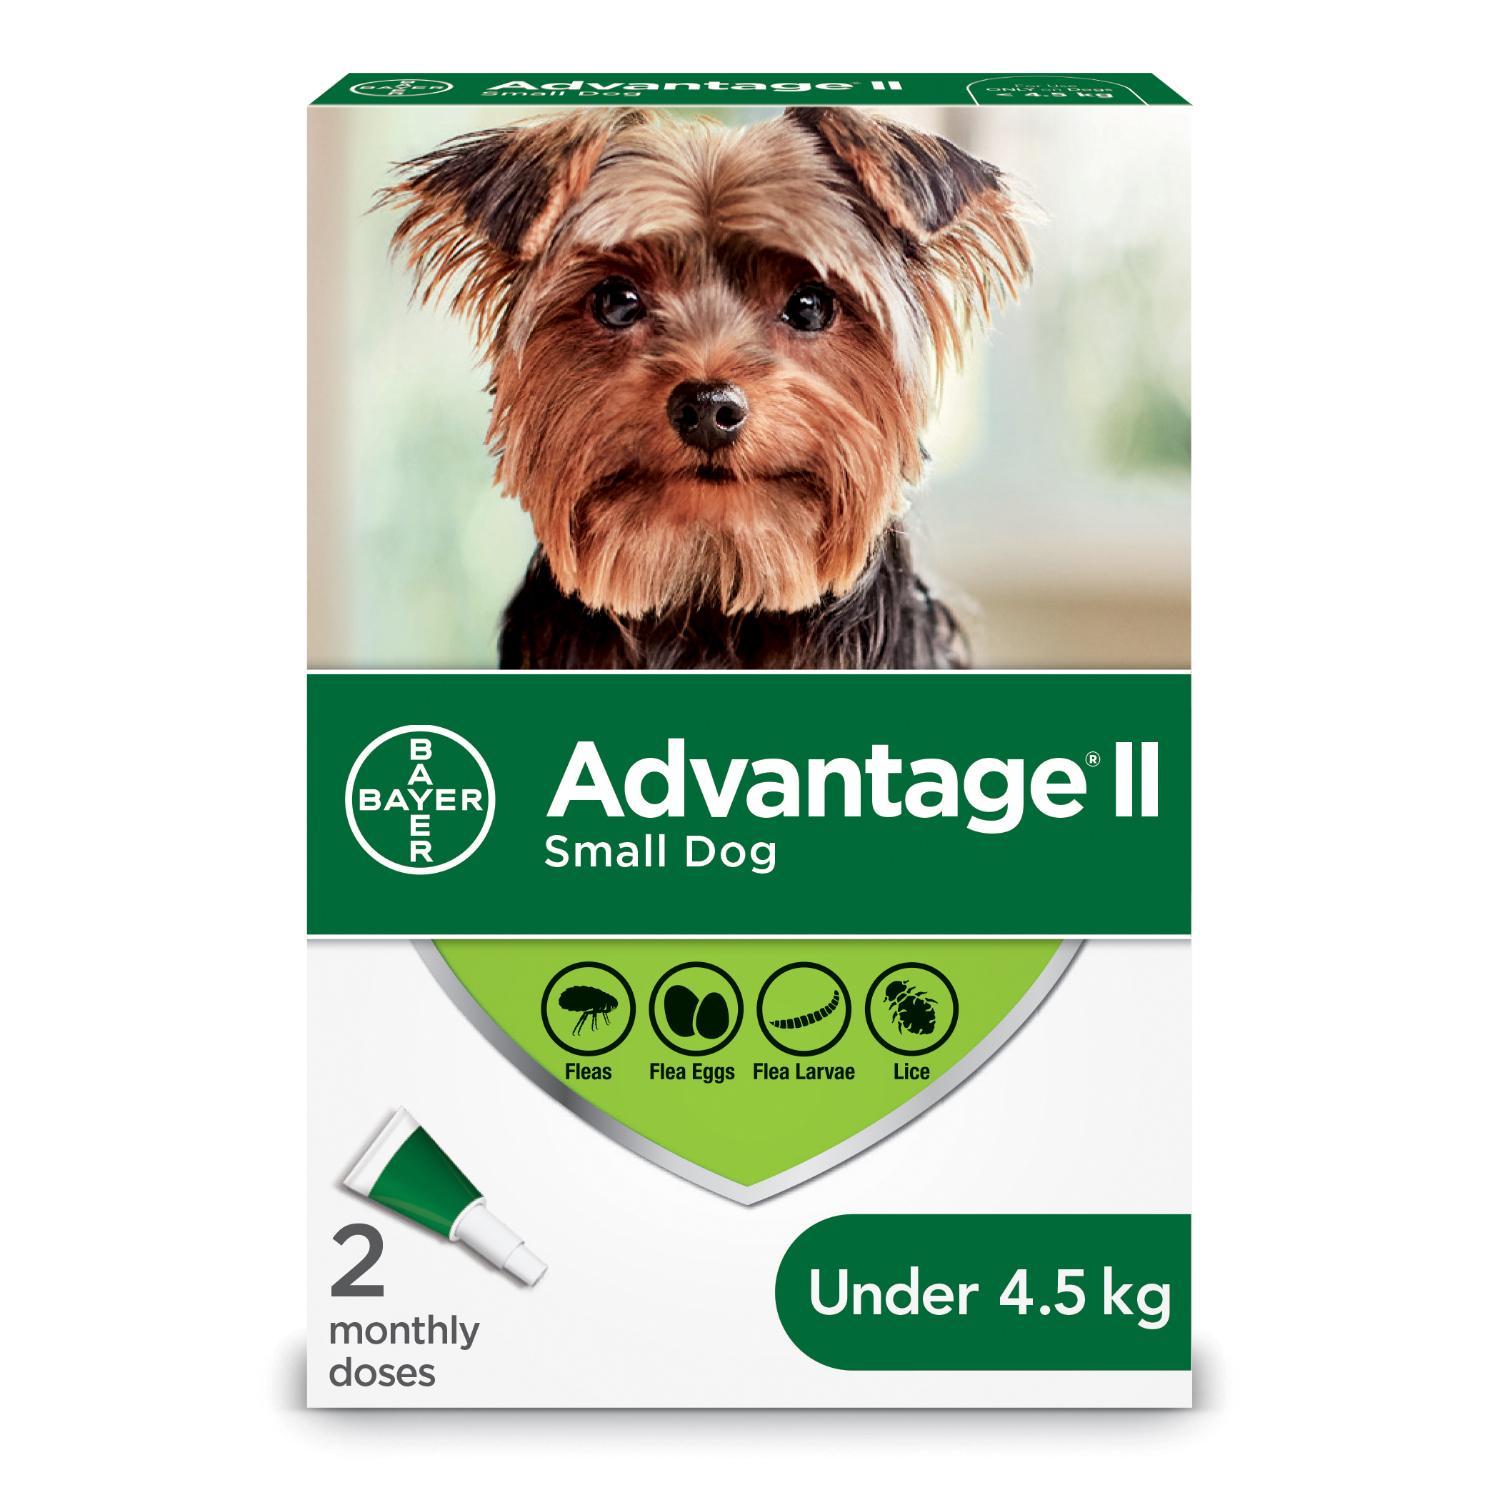 Bayer Advantage II Flea Protection for Small Dogs under 4.5-kg Image